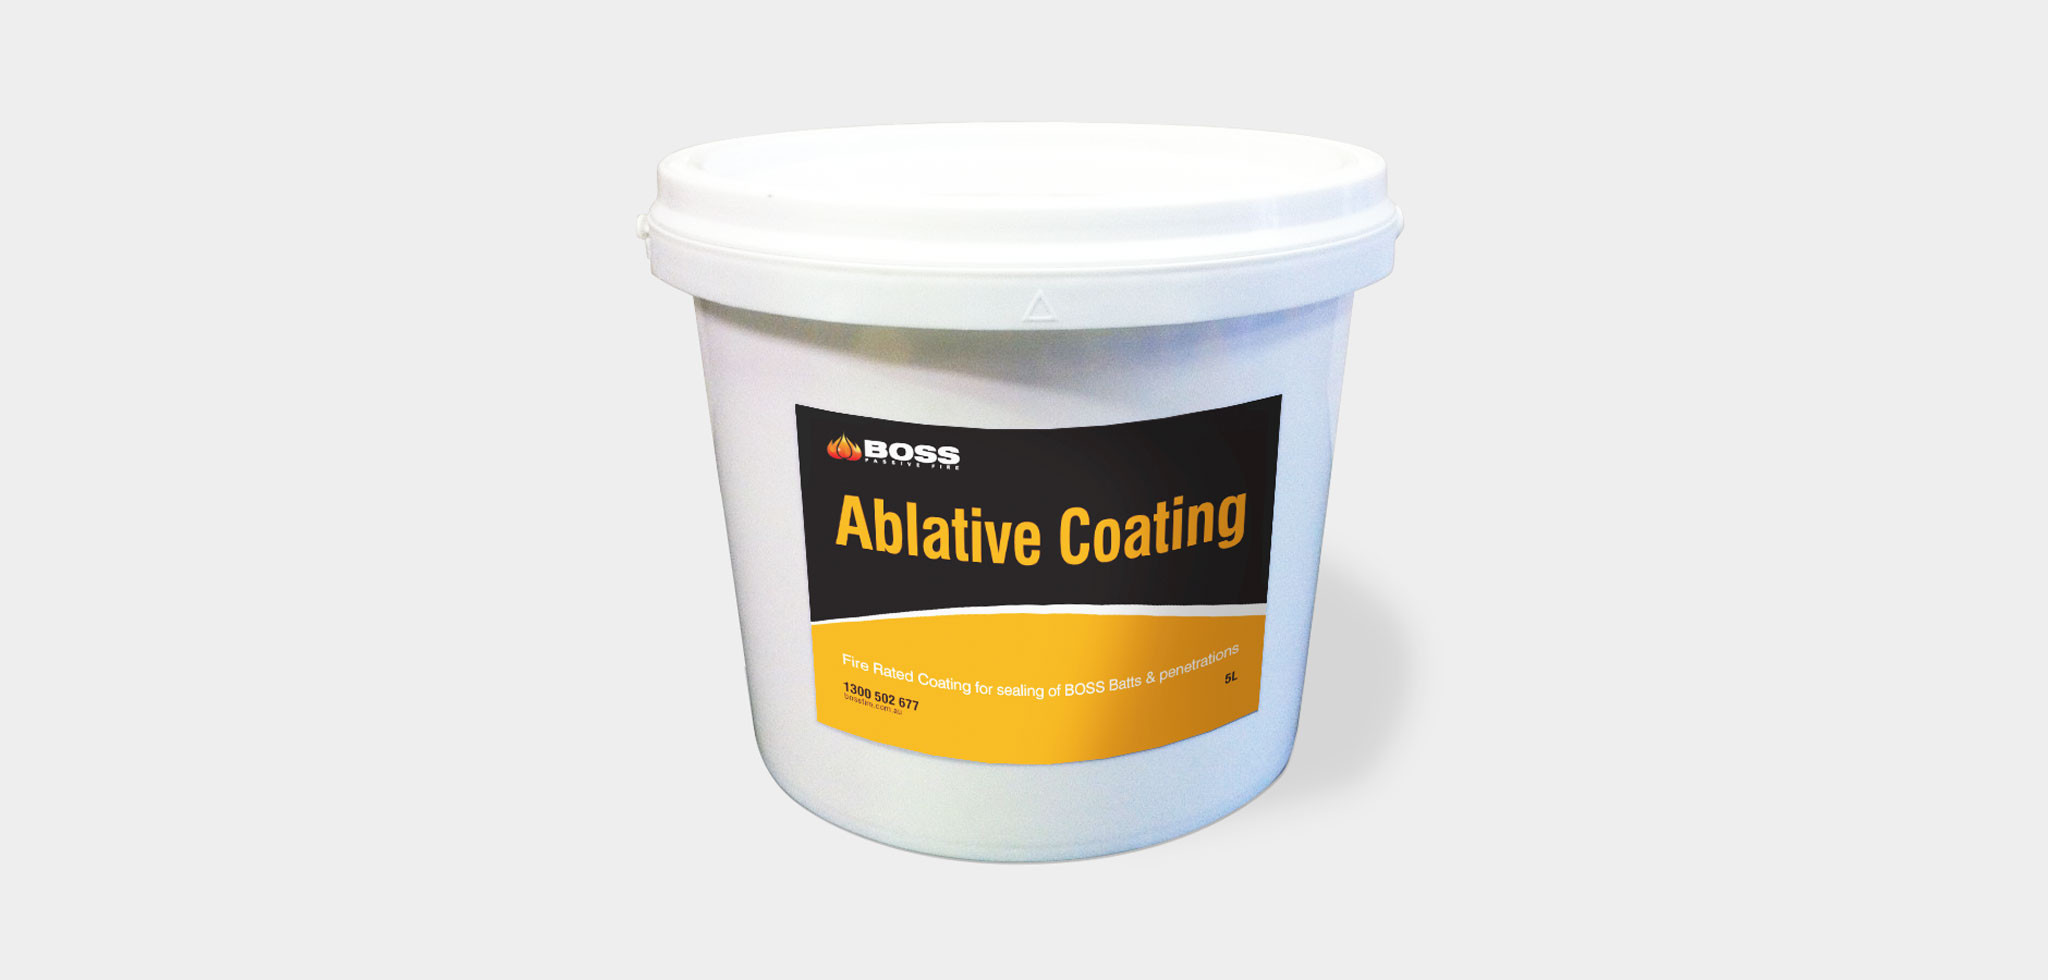 Ablative Coating